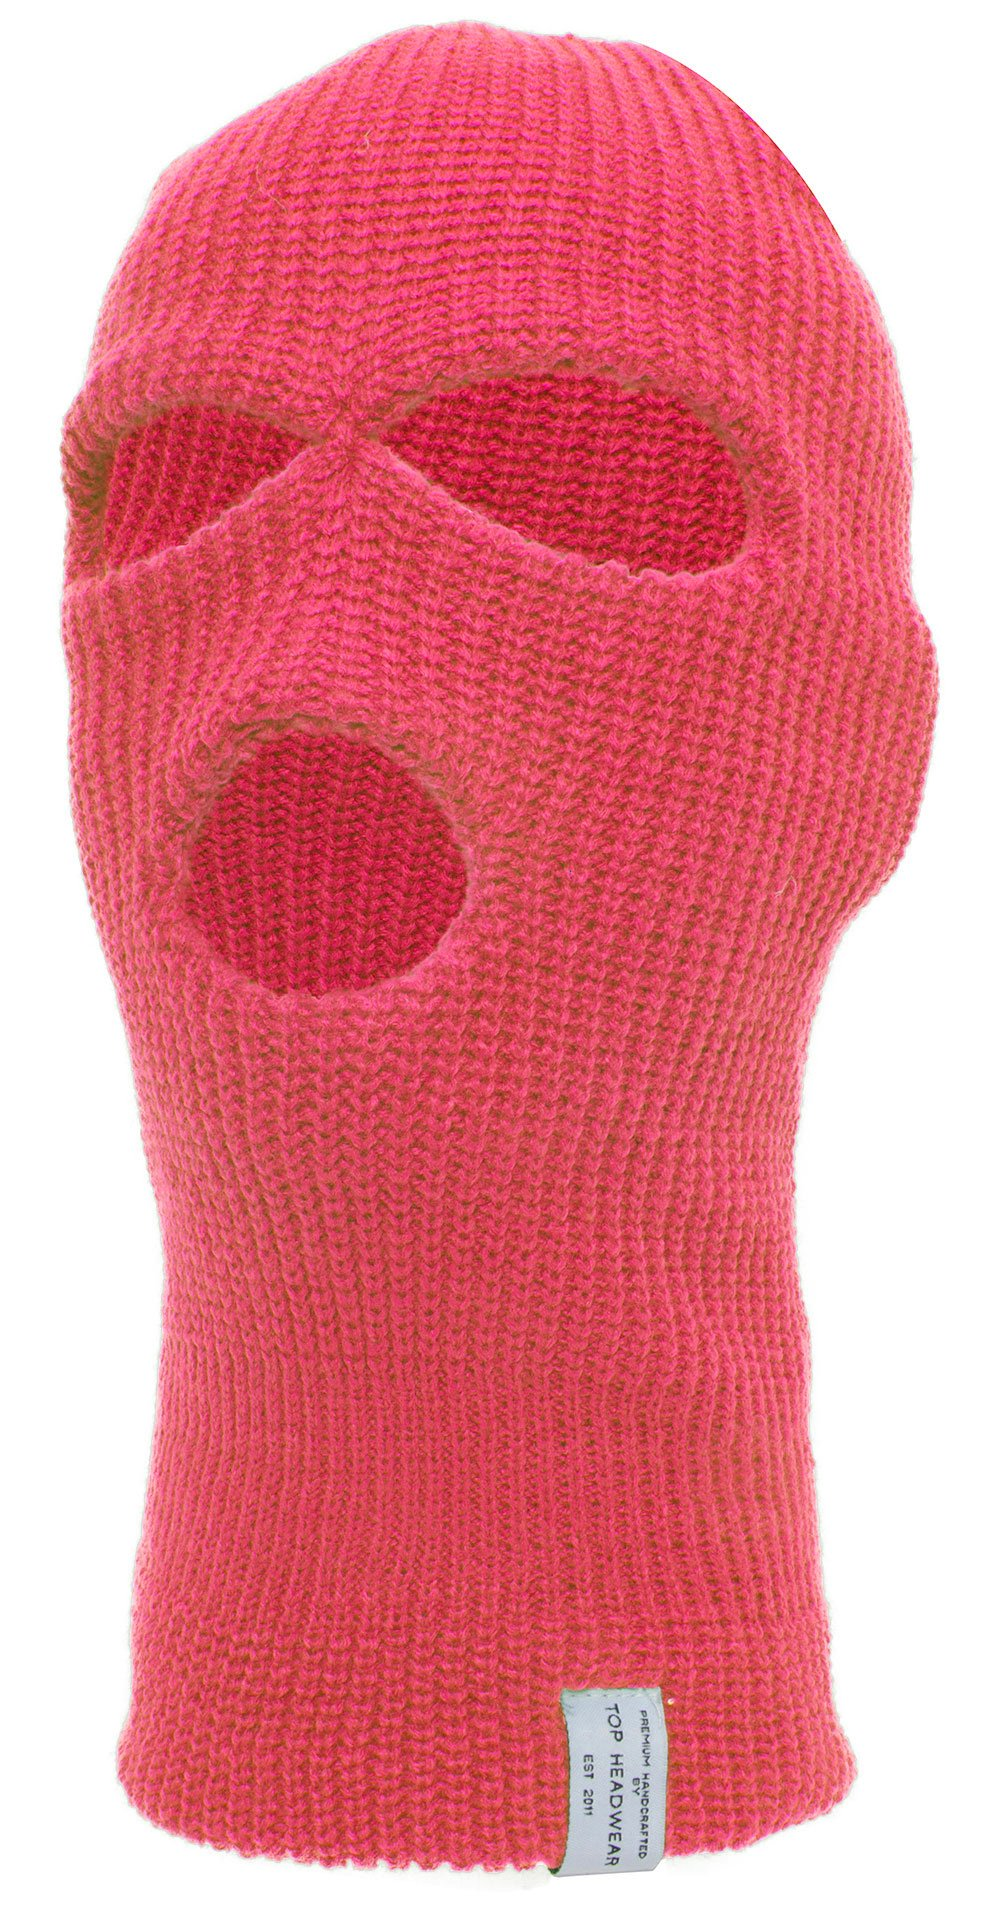 3 Hole Ski Mask Hot Pink, Sugar Skull by Hollywood (Image #2)